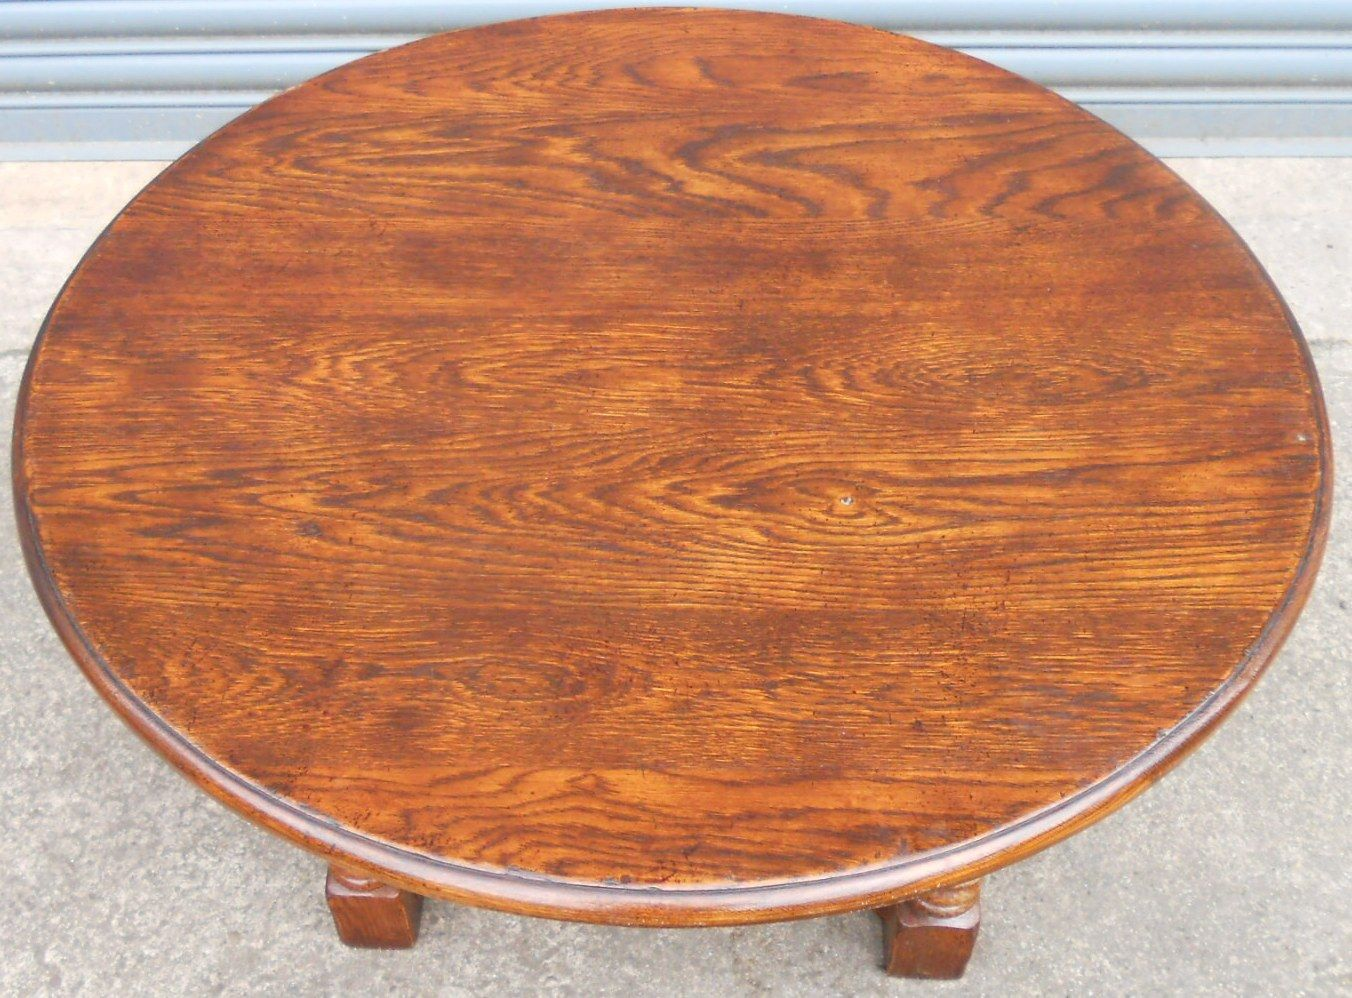 Sold Large Round Oak Coffee Table